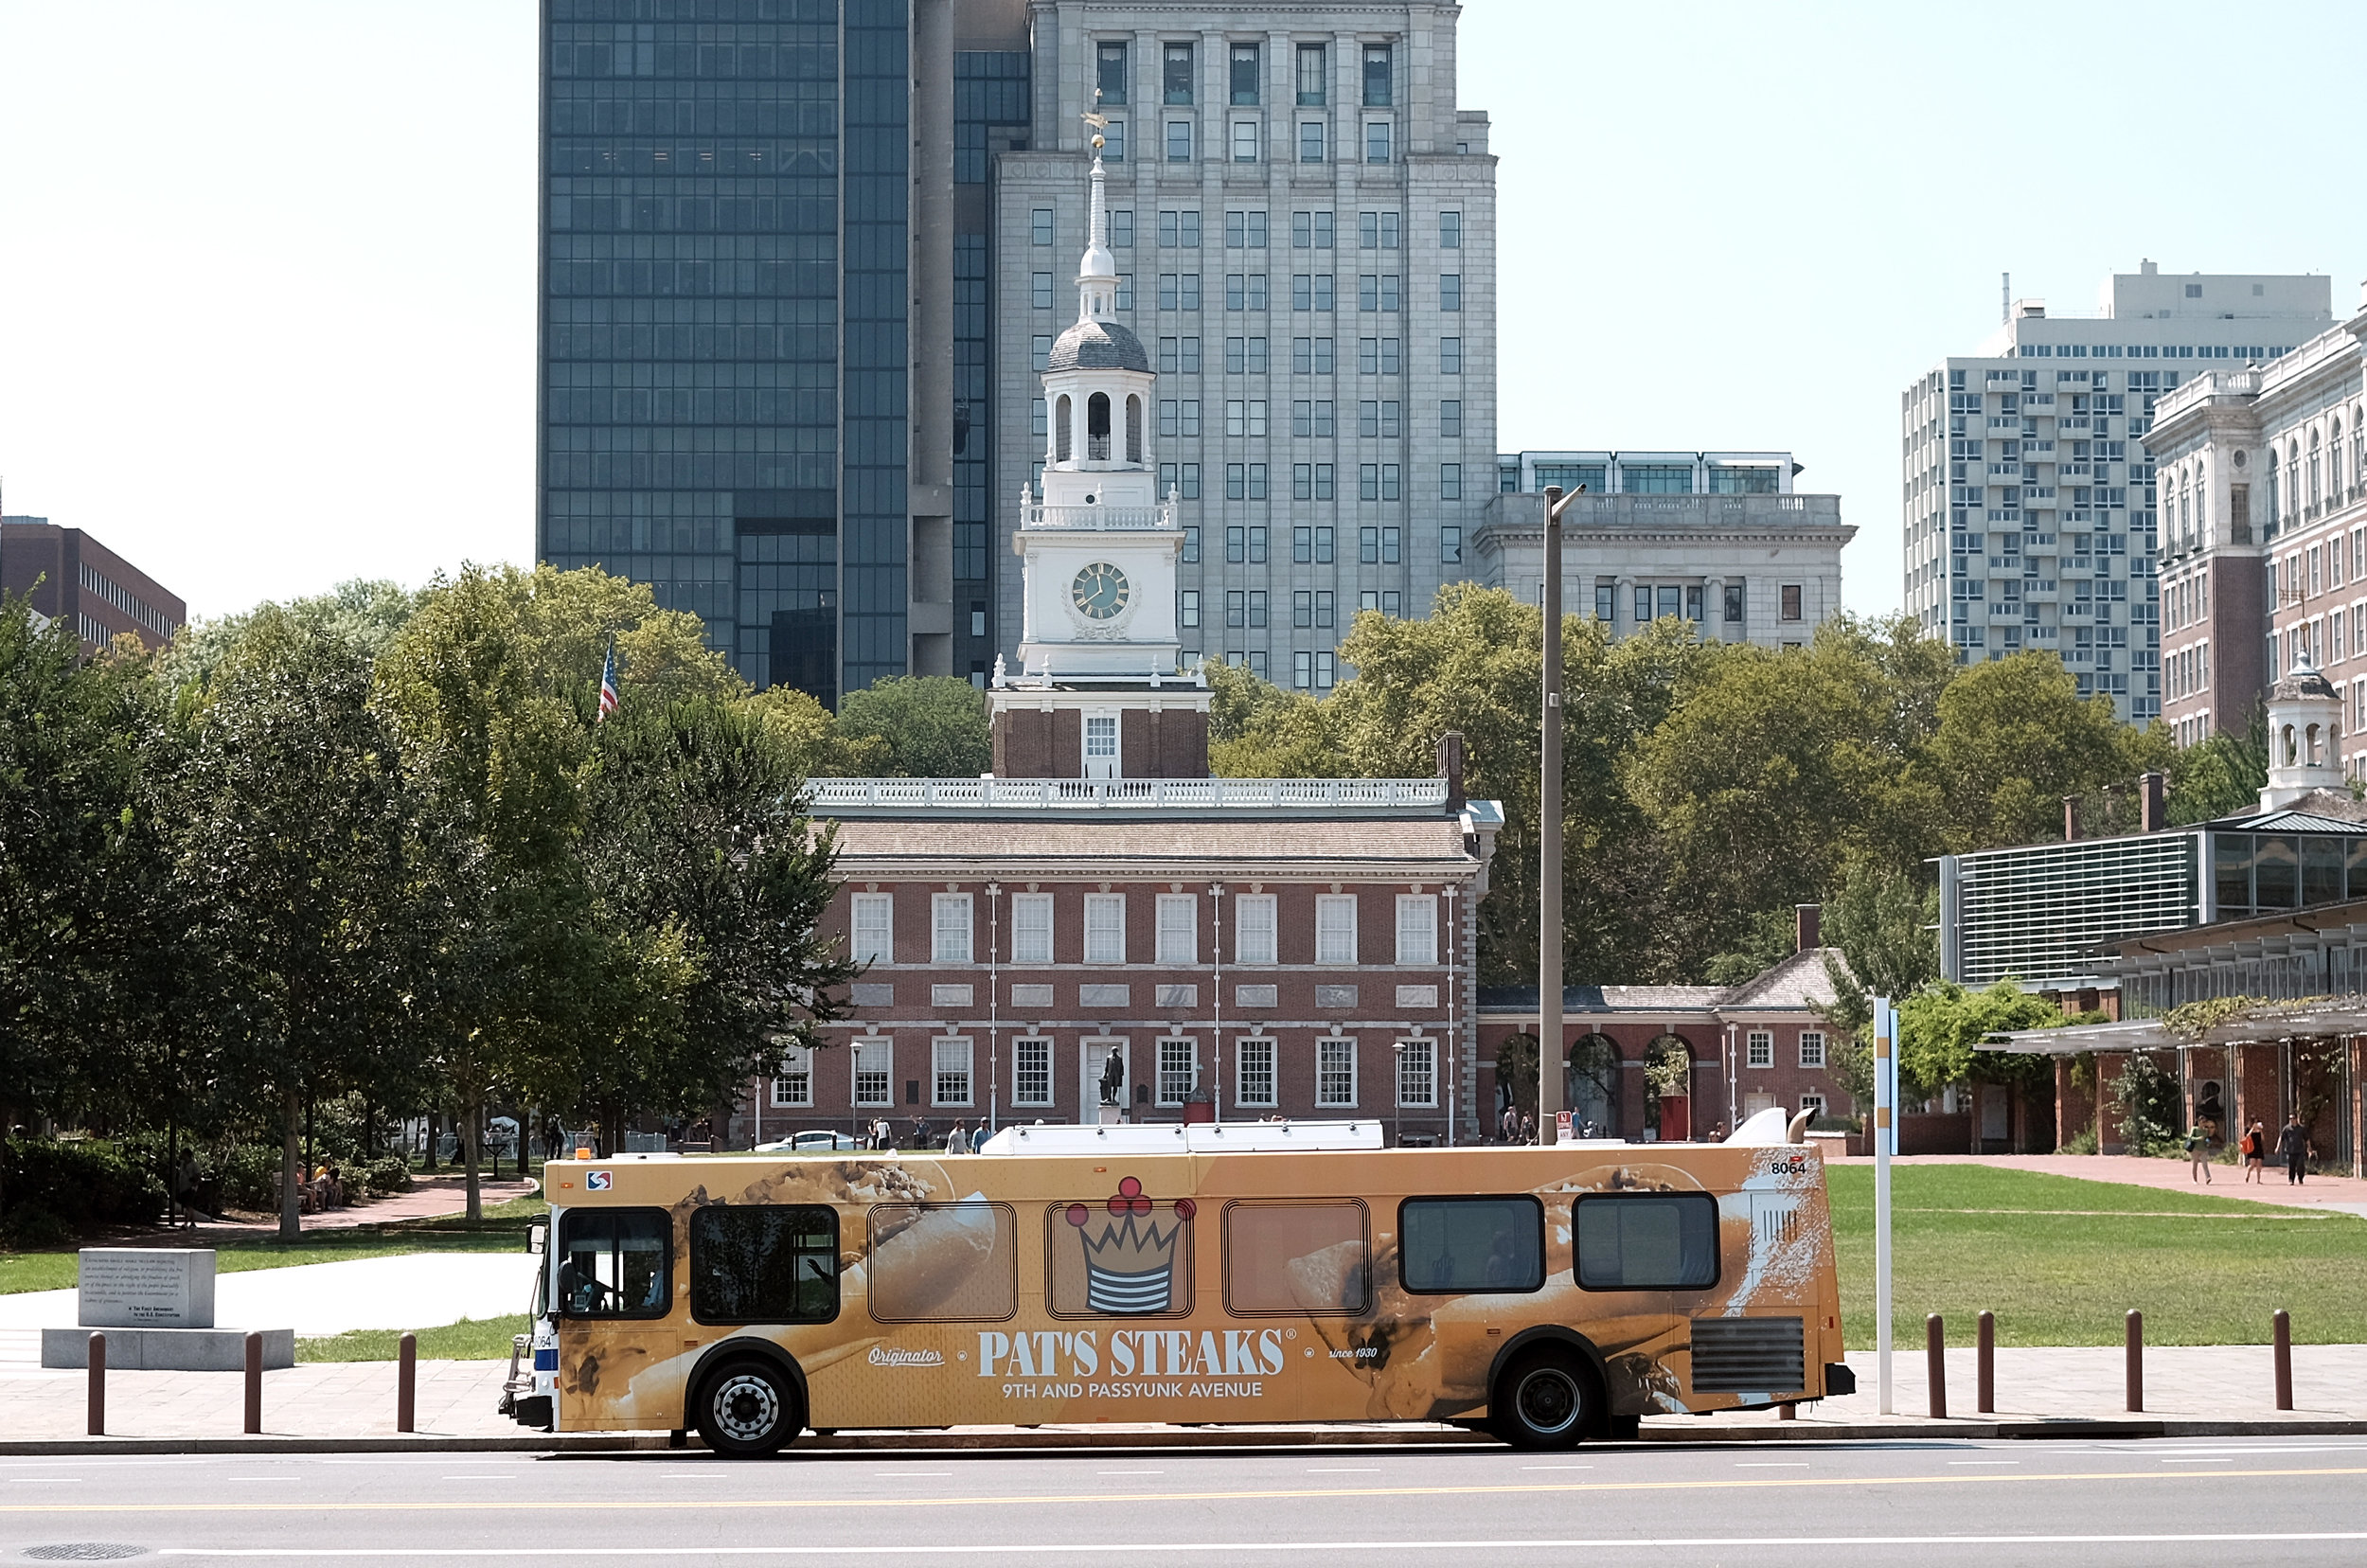 Philadelphia_Bus_Full Wrap_21529253_648211.jpg